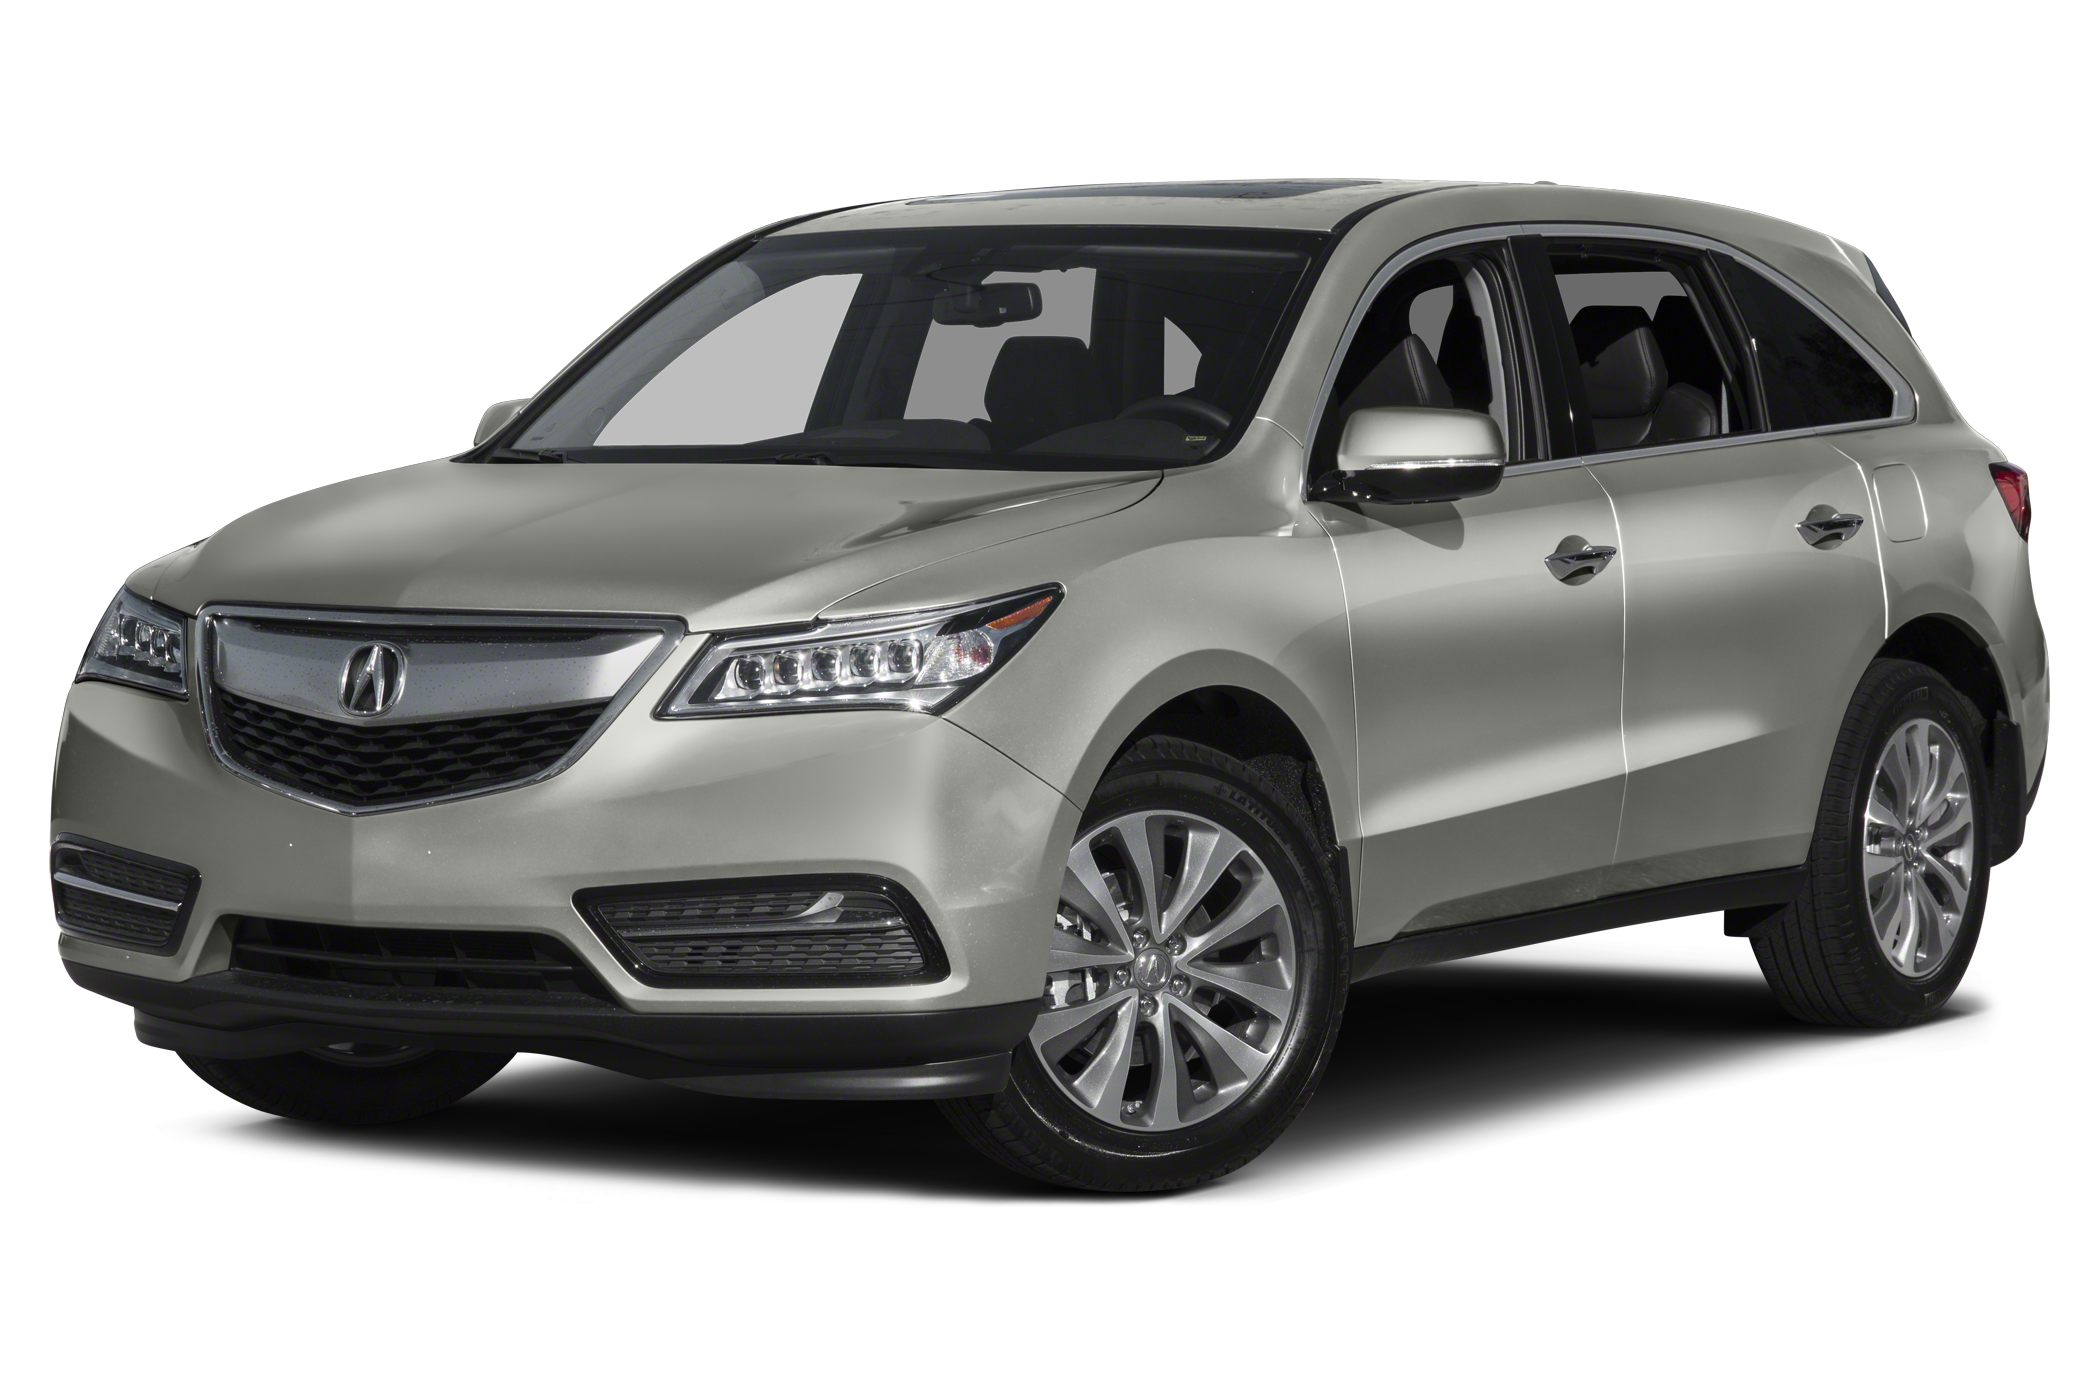 2015 Acura MDX 35 Technology w Entertainment Nav Call and ask for details Type your sentence h